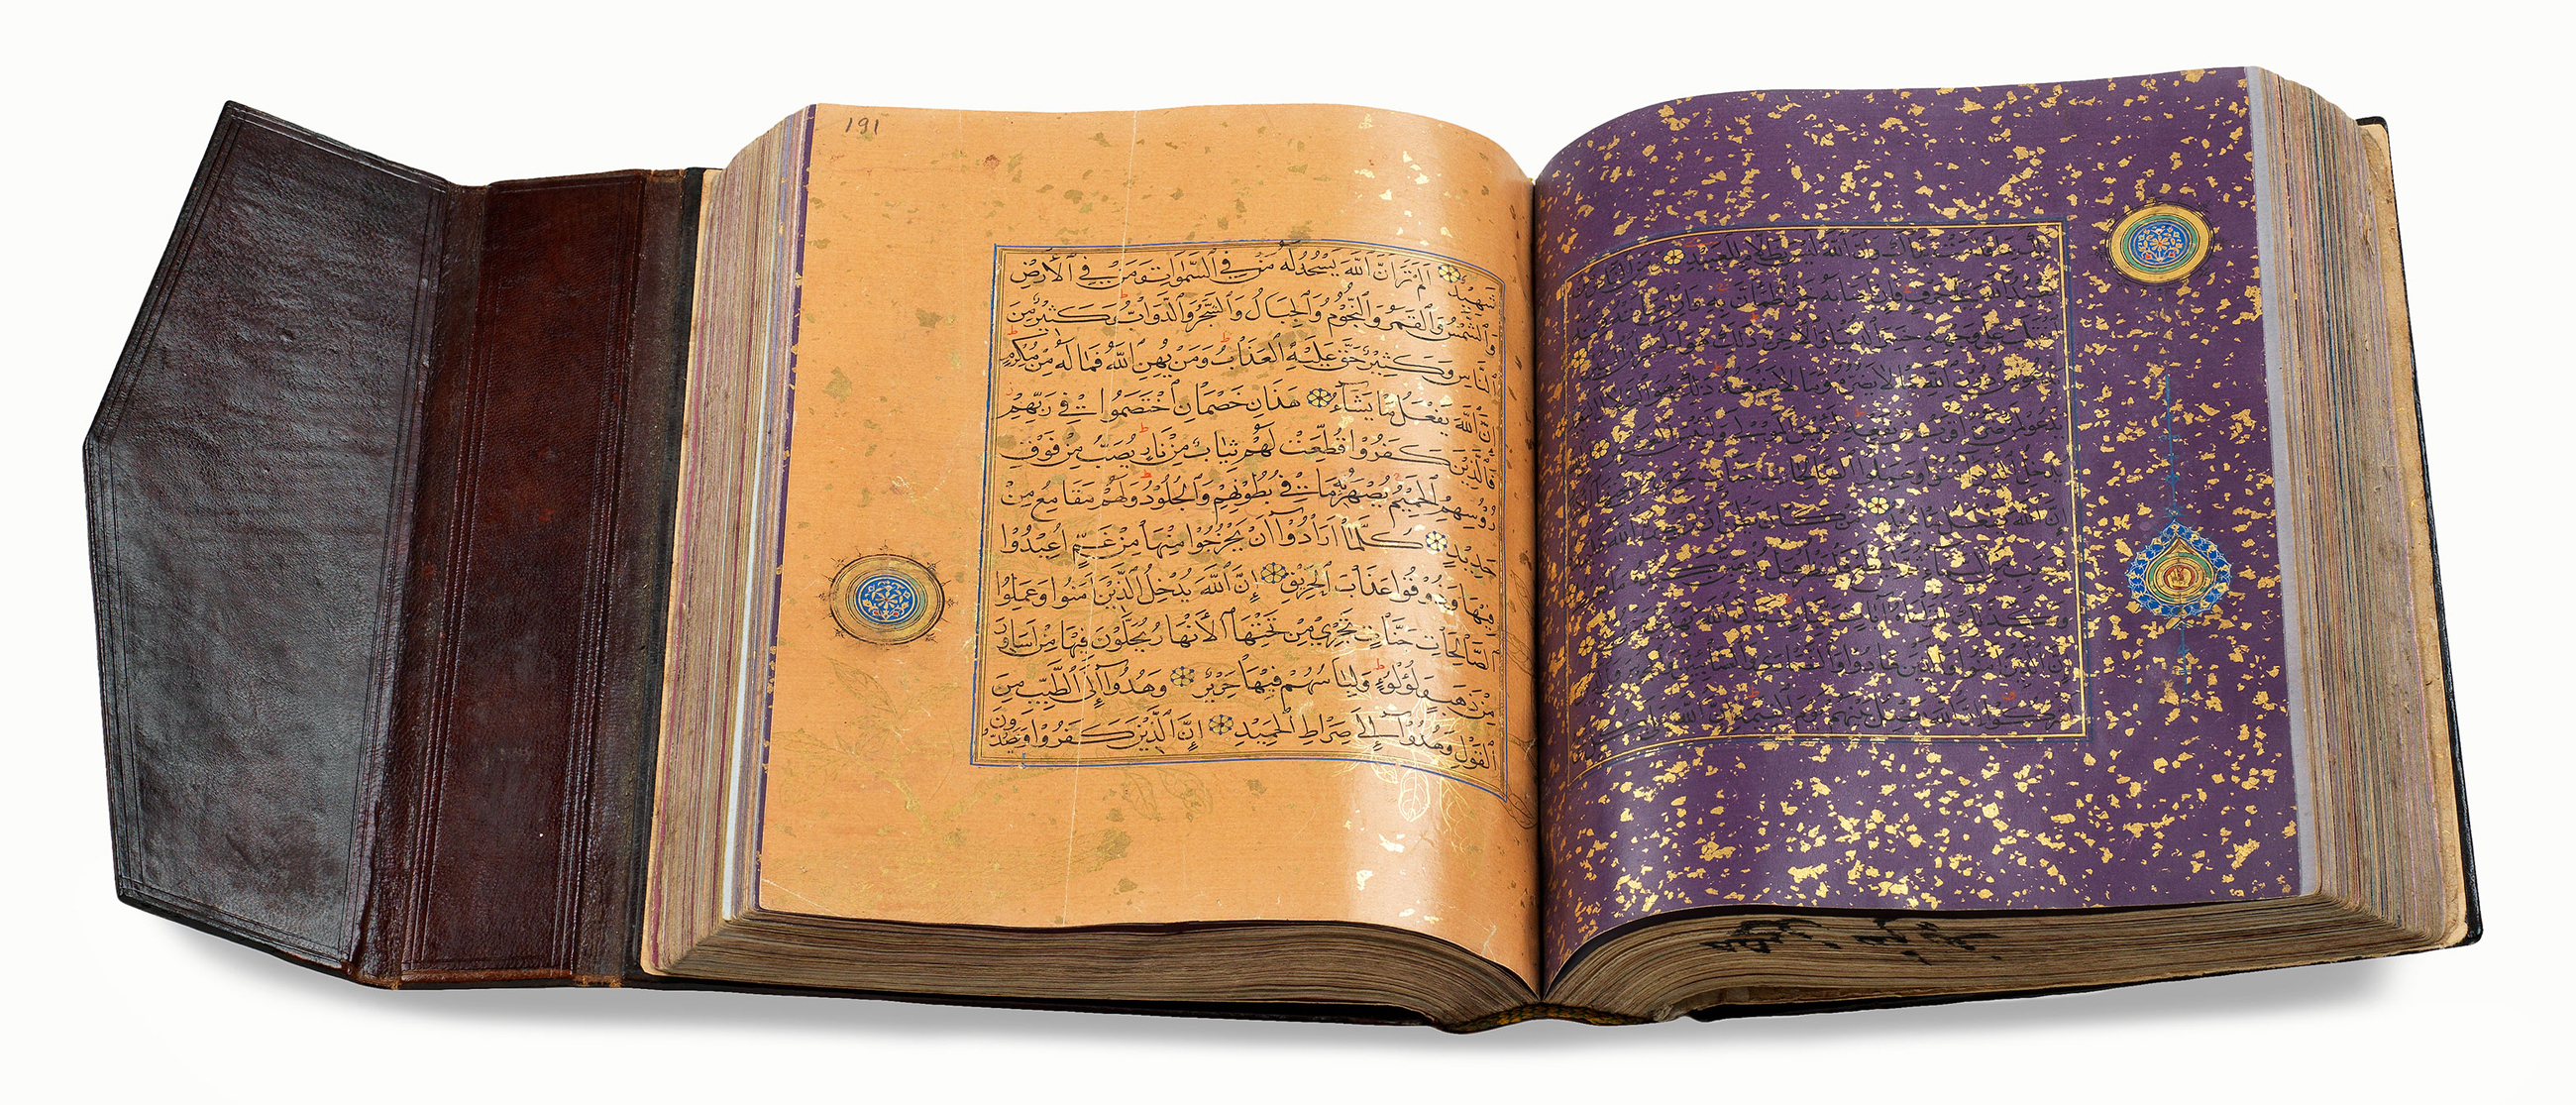 Banner image for The Art of the Qur'an: Treasures from the Museum of Turkish and Islamic Arts